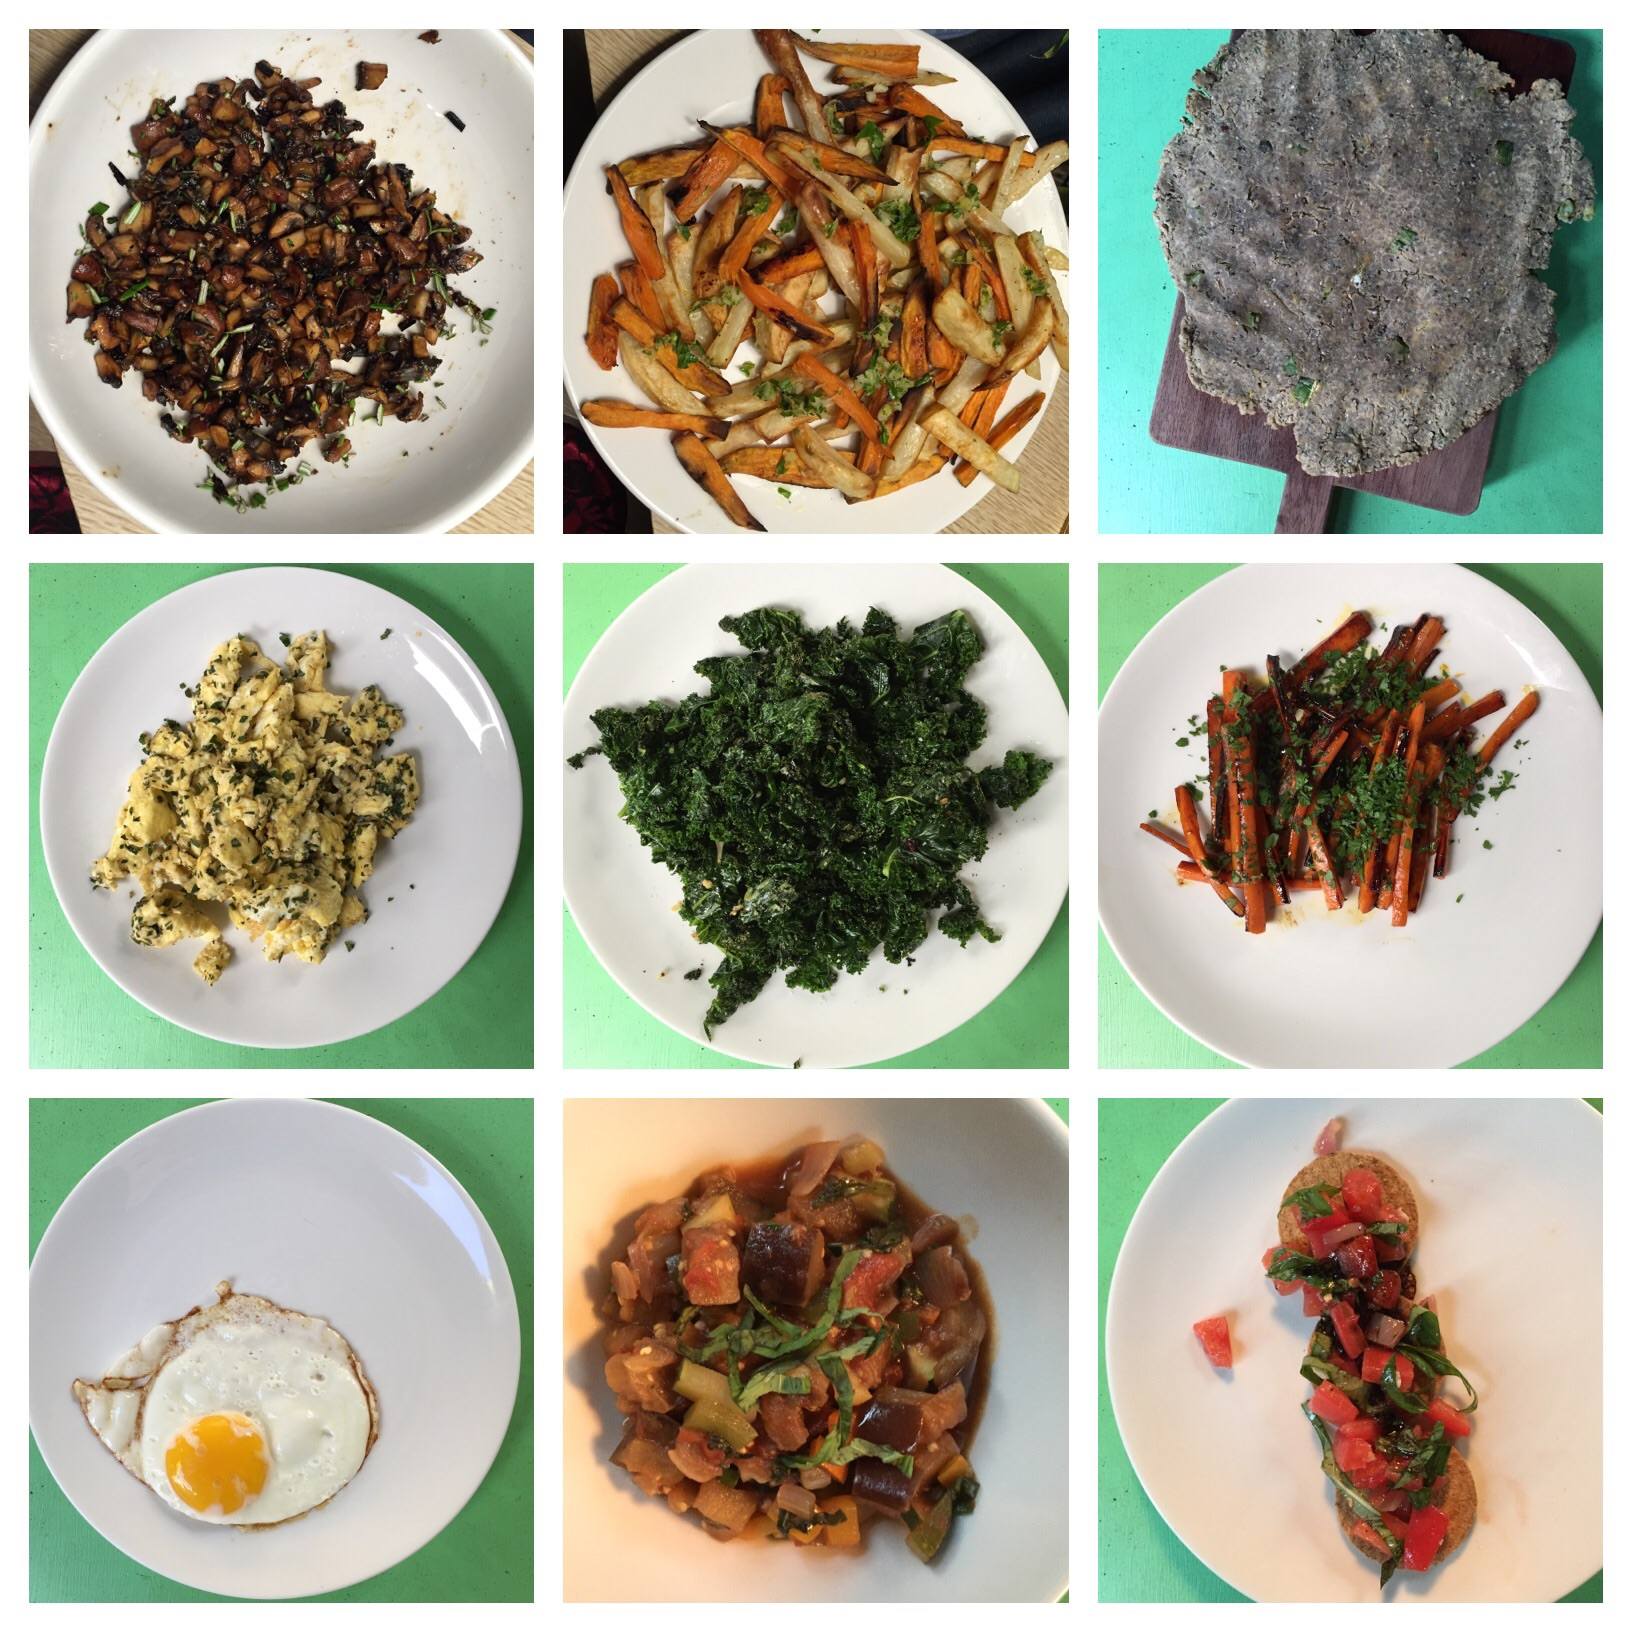 Recipes I made in my online Clean Eating Institute class, which taught me healthy, balanced nutrition: Mushroom Duxelles, Baked Sweet & Redskin Fries, Quinoa Flatbread, Herbed Scrambled Eggs, Garlic Olive Oil Wilted Kale, Glazed Carrots, Sunny Side Up Egg, Ratatouille-Style Vegetable Stew, Tomato Concasse